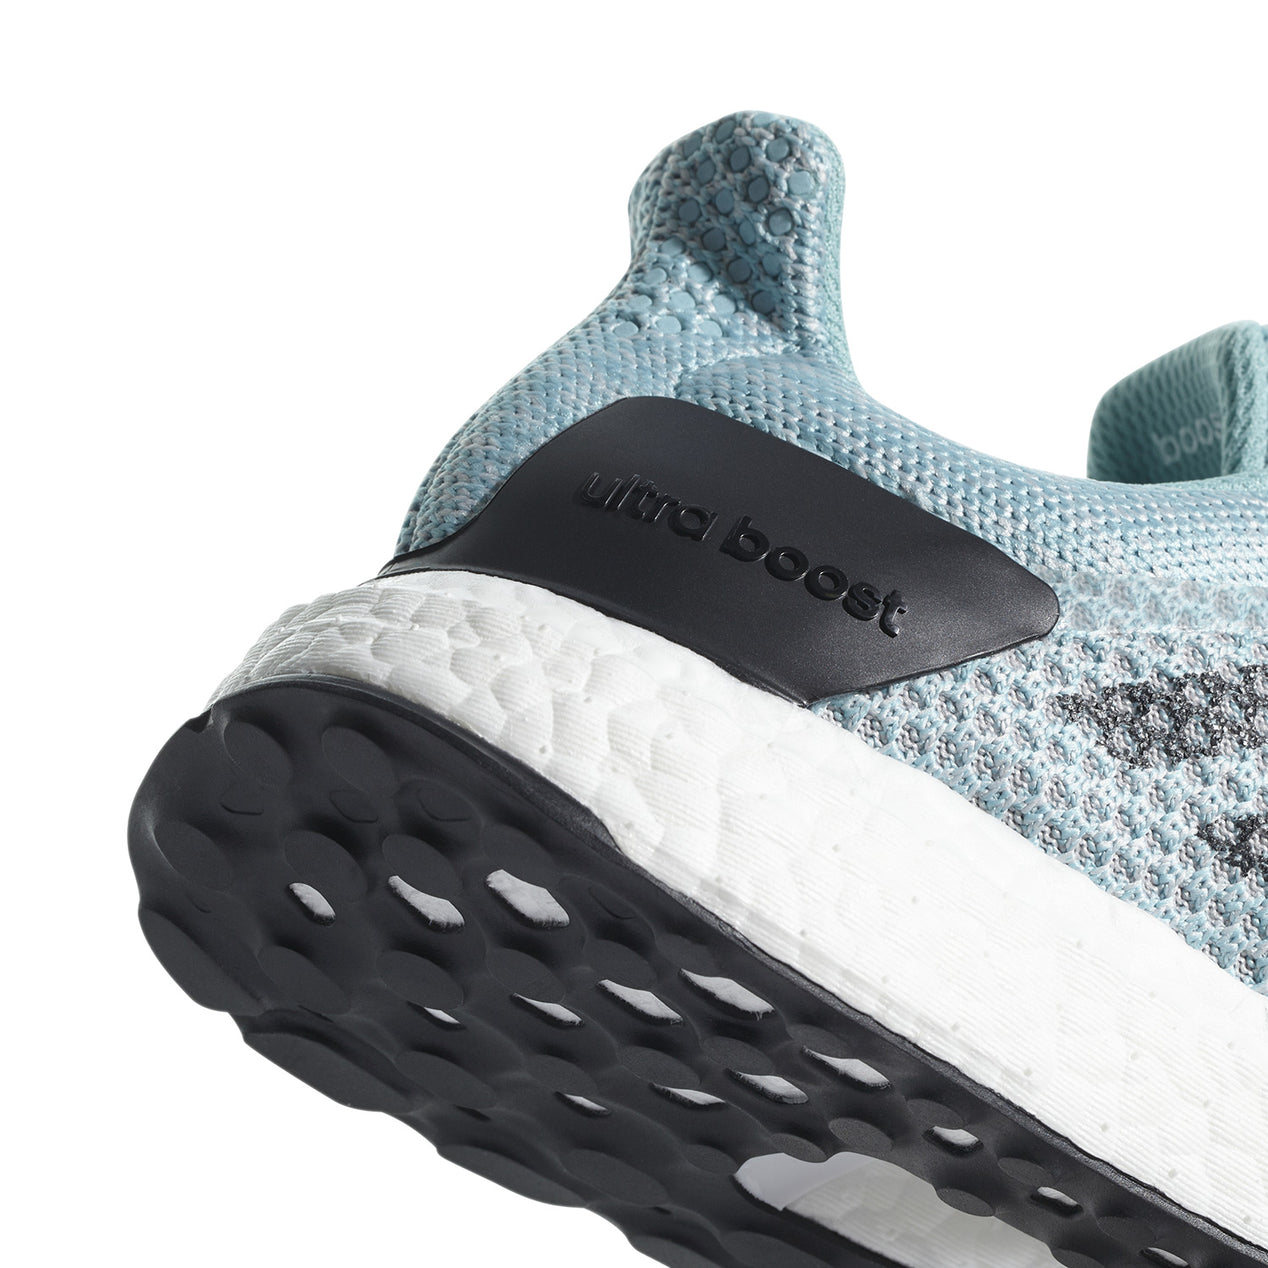 6599b4edb76795 ... UltraBOOST ST Parley Running Shoes - Women s thumb ...